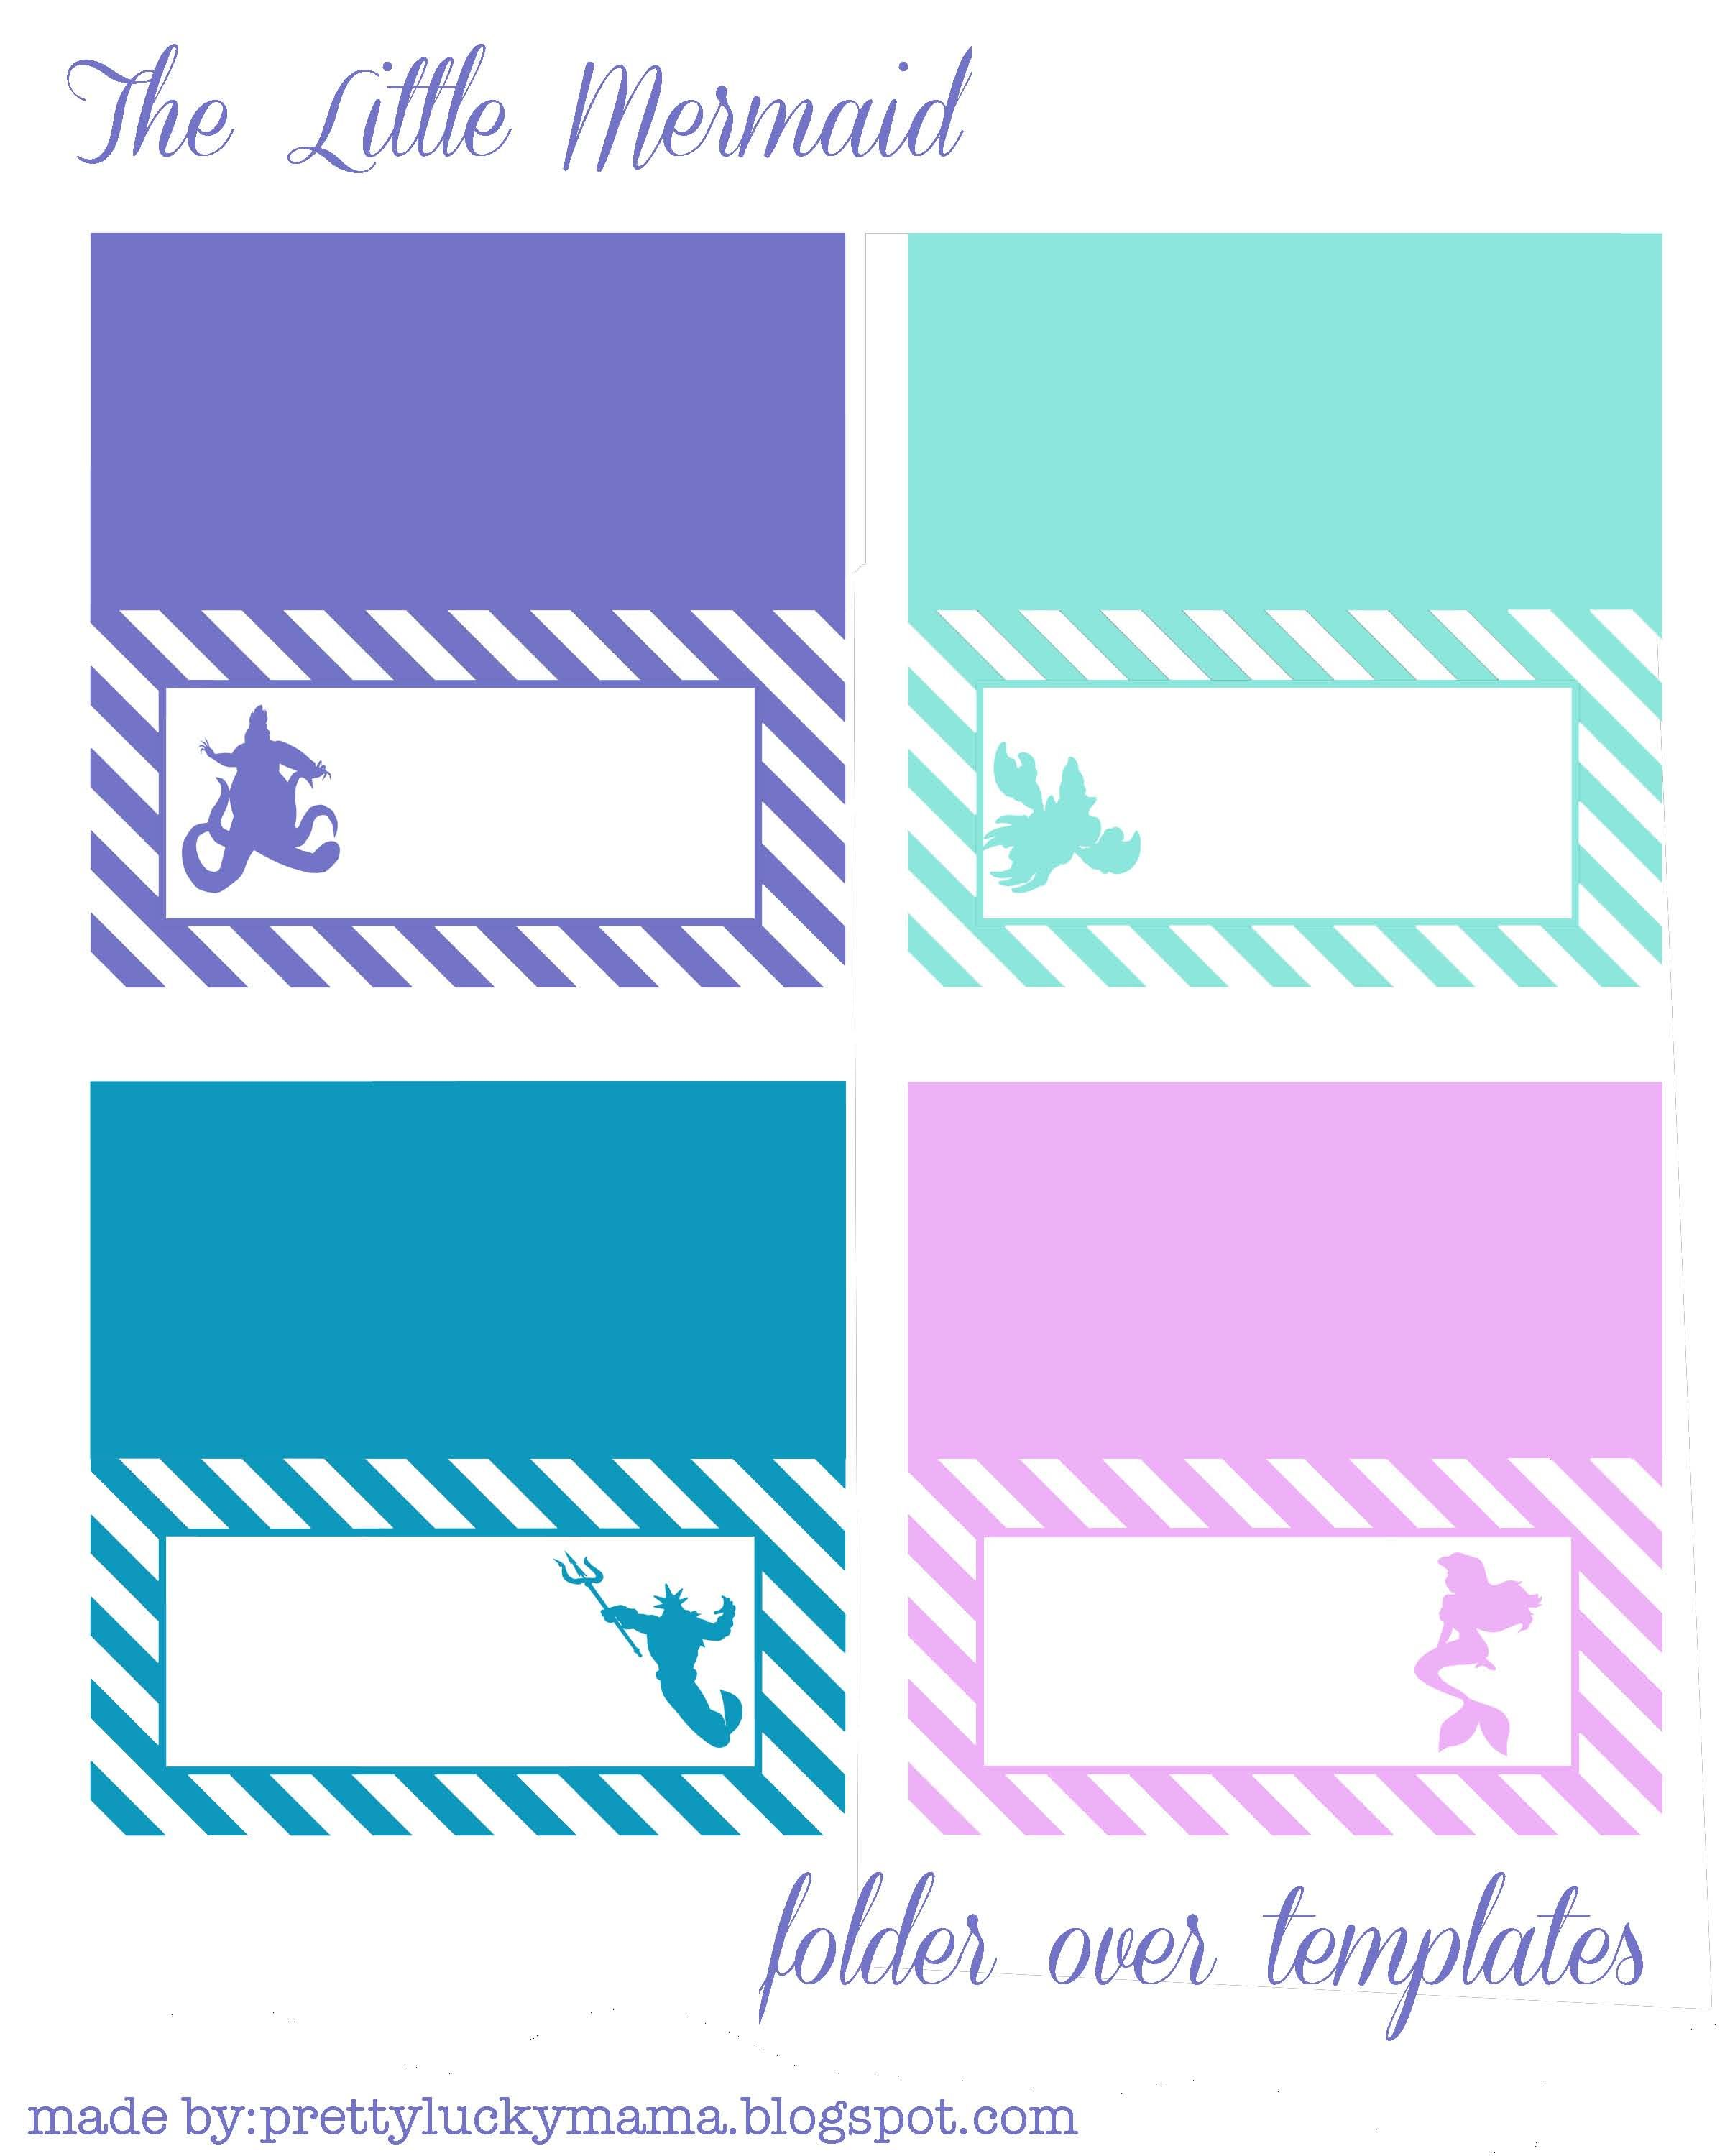 The little mermaid fold over templates free printables also take a look at my shop for more for Mermaid templates printable